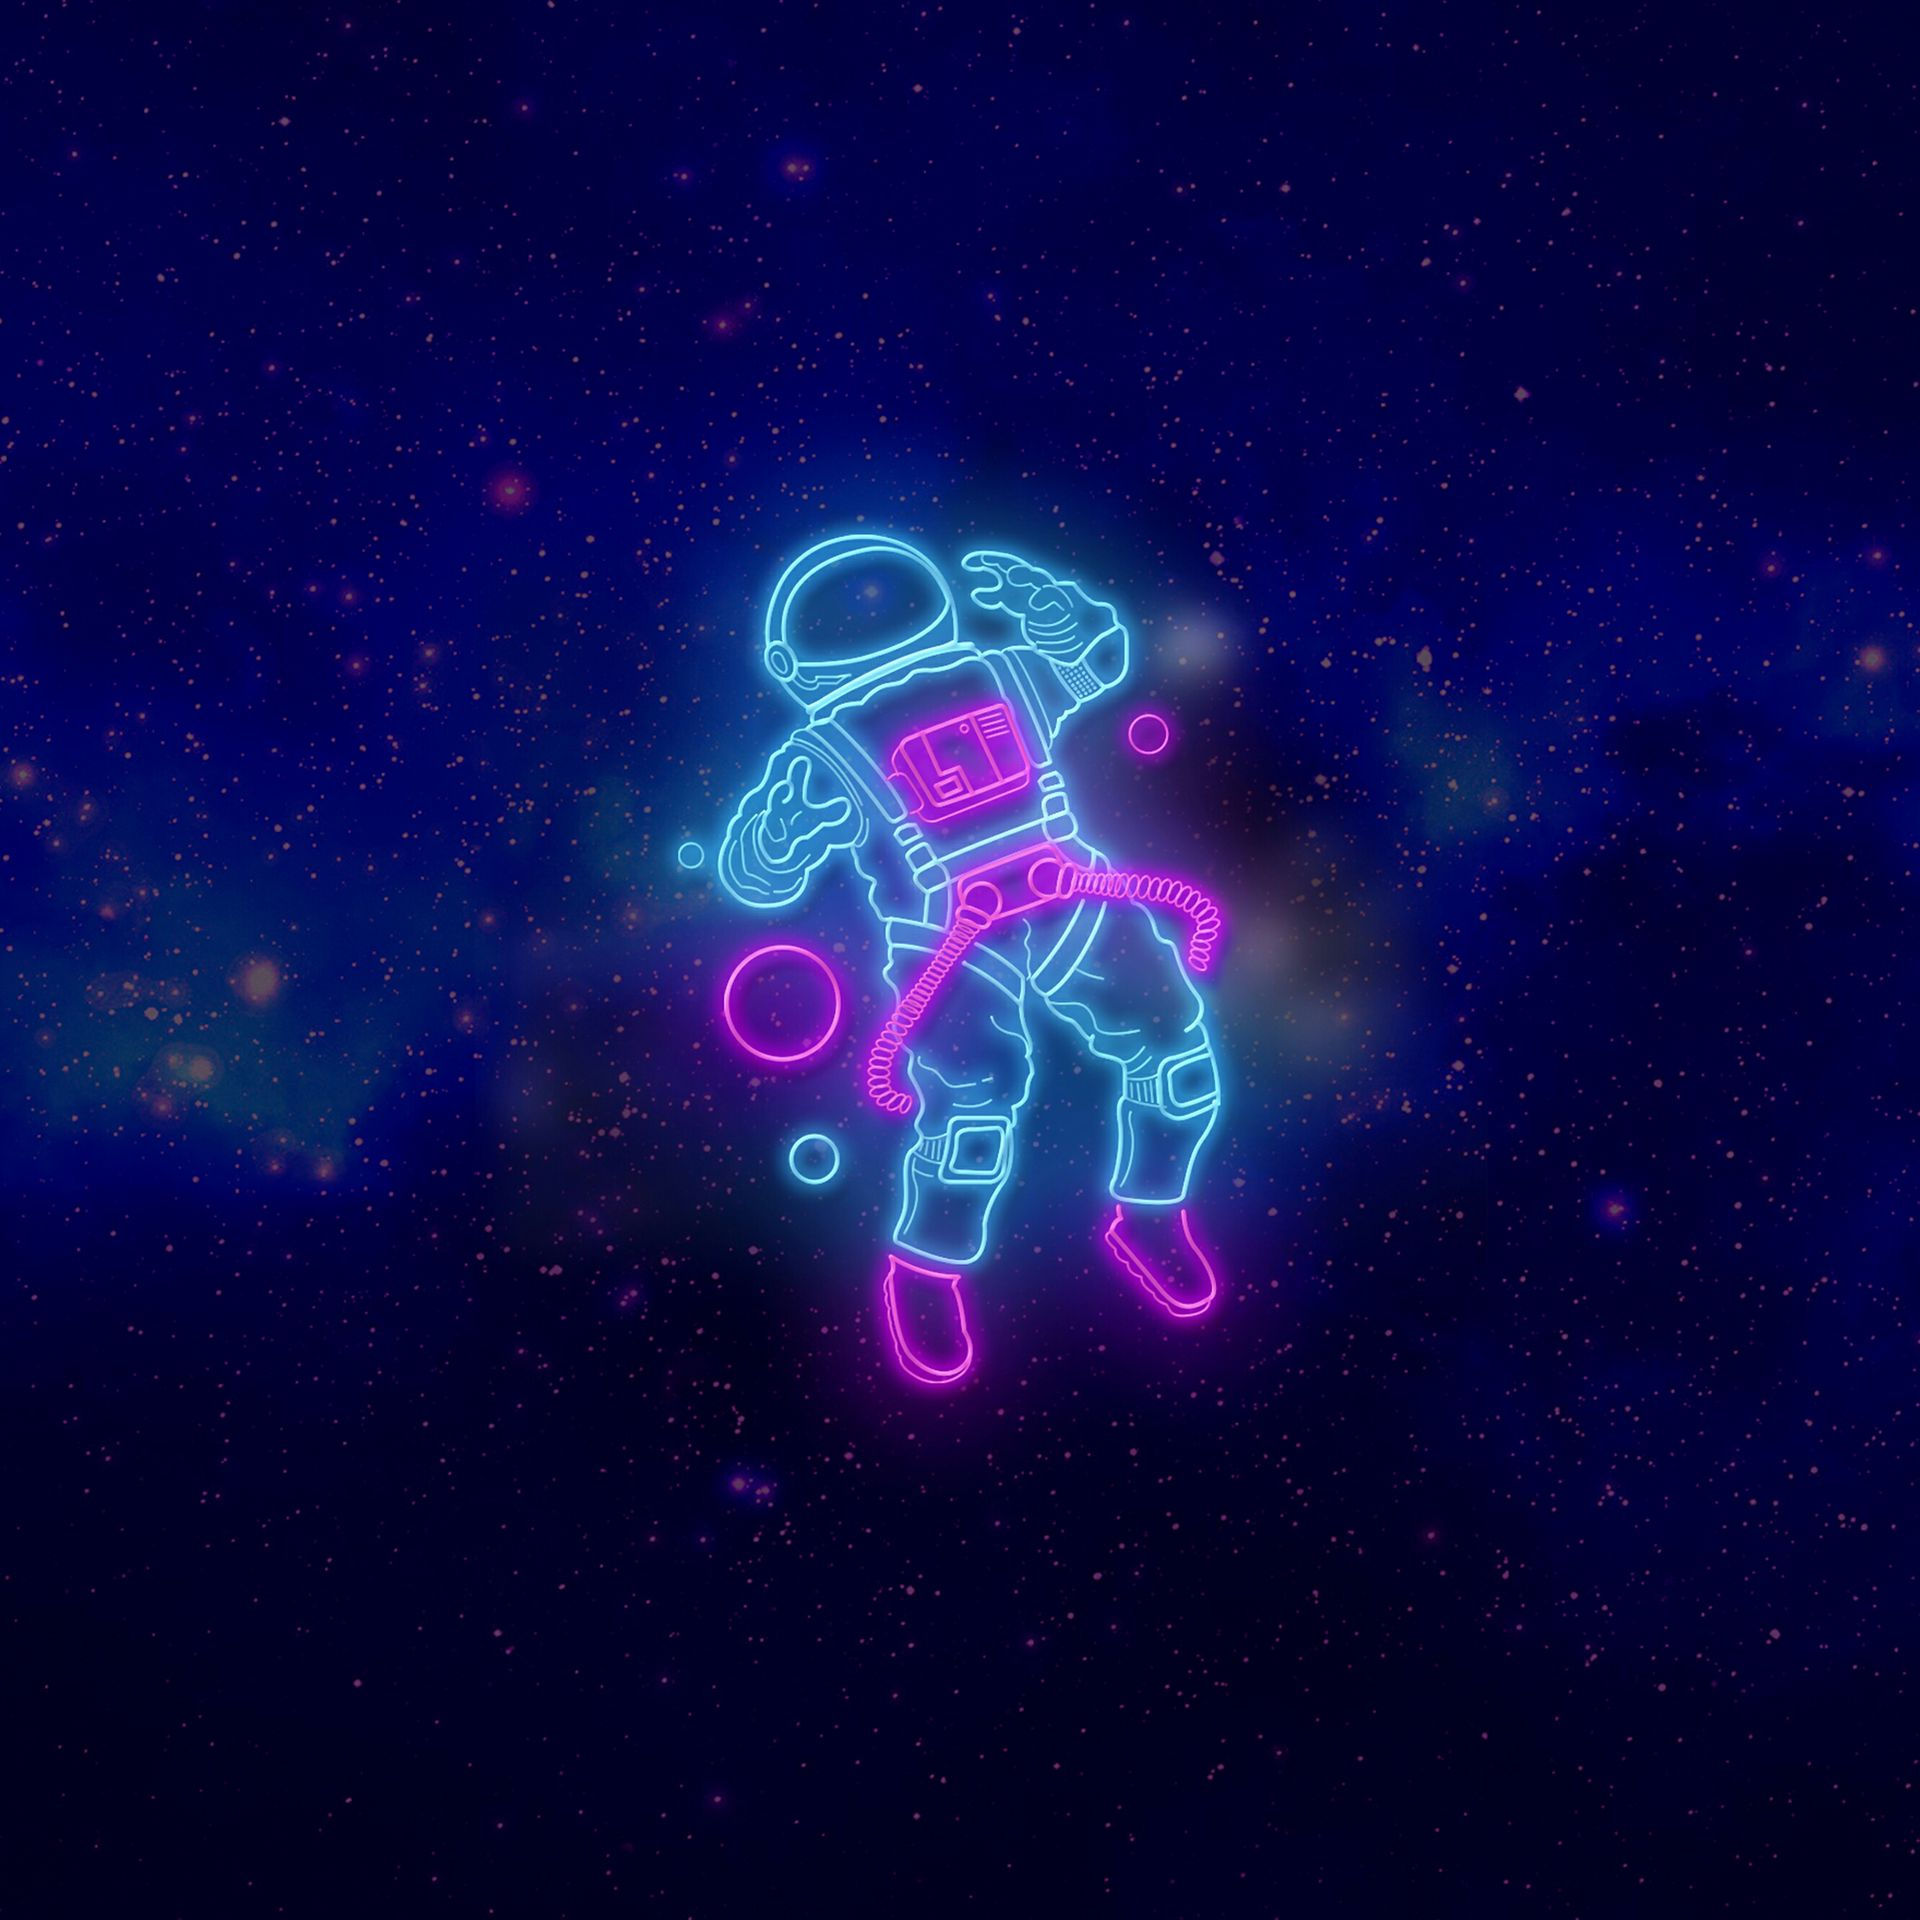 Cool Neon Wallpapers For Boys 2566827   HD Wallpaper 1920x1920